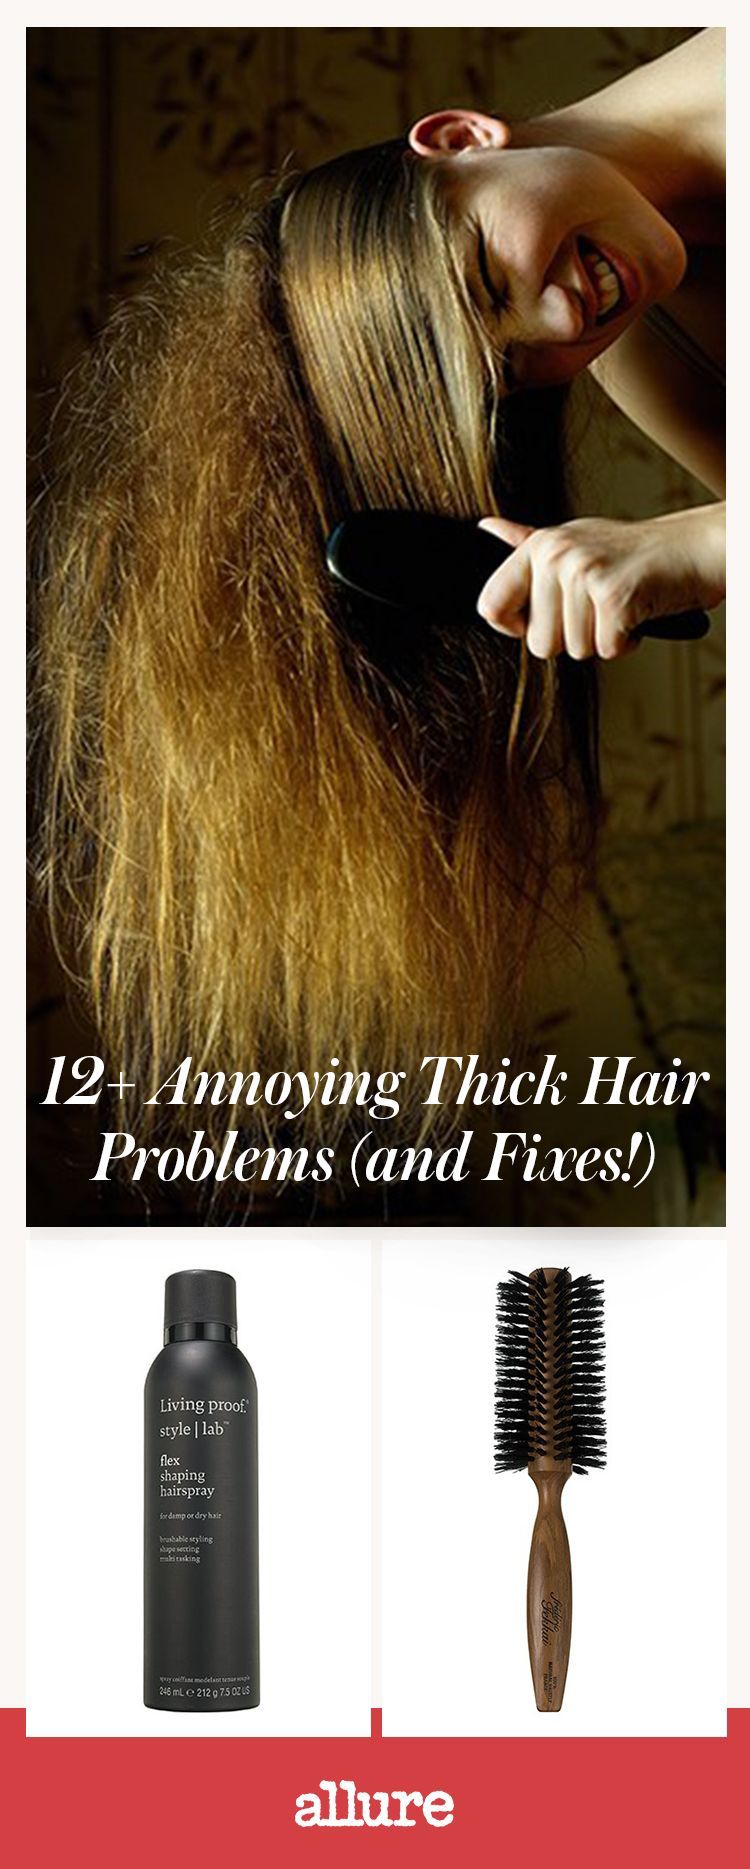 The 12 Most Annoying Thick Hair Problems (and Fixes!)